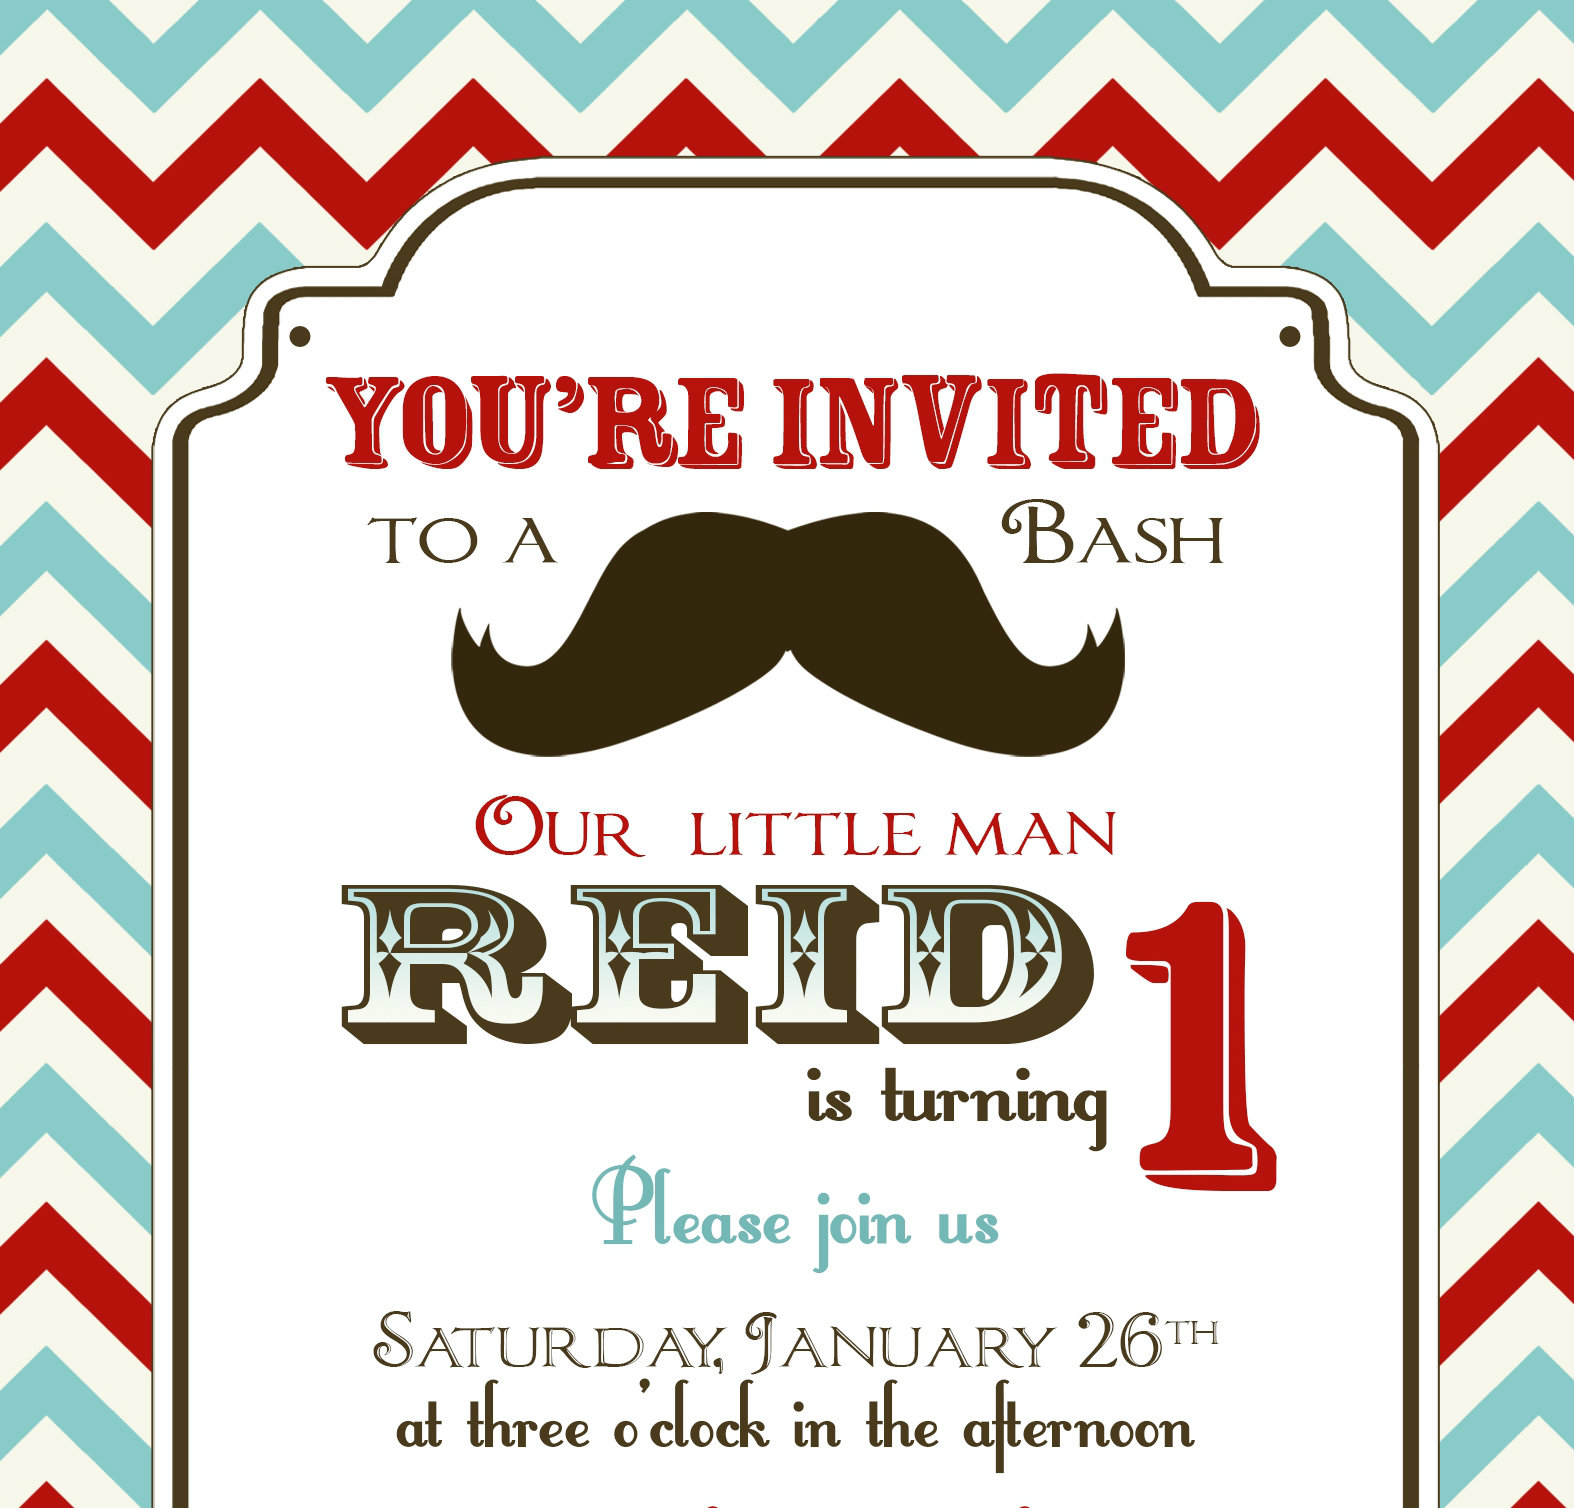 mustache birthday card printable ; wonderful-moustache-birthday-invitations-images-invitation-card_cute-moustache-birthday-invitations-photos-on-ideas-mustache-party-invitation-template-free-or-musta